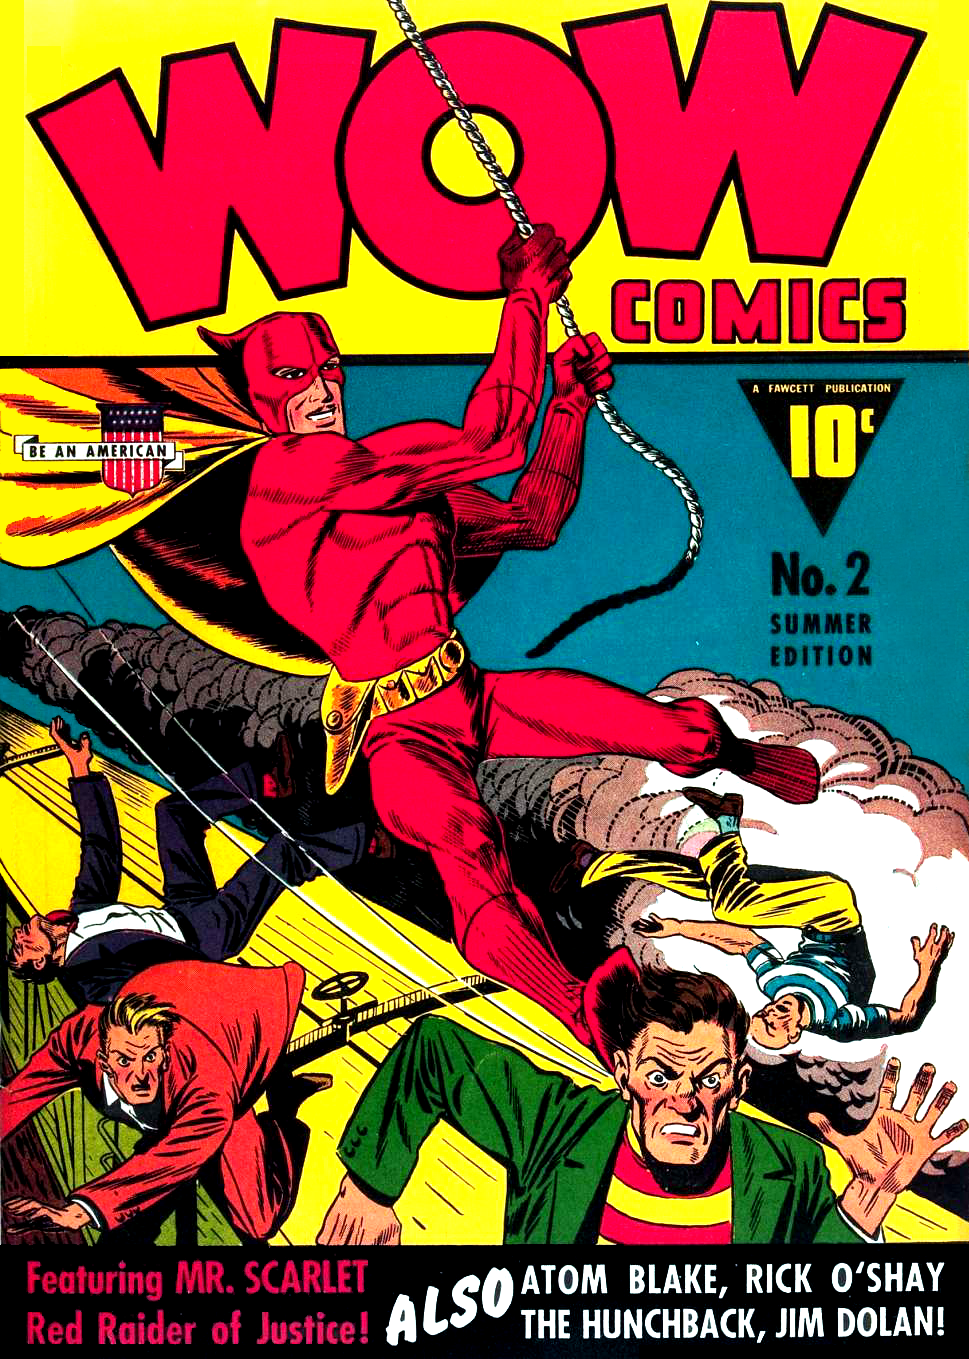 Mr Scarlet swings into action on the cover of Wow Comics number 2 (Summer, 1941).